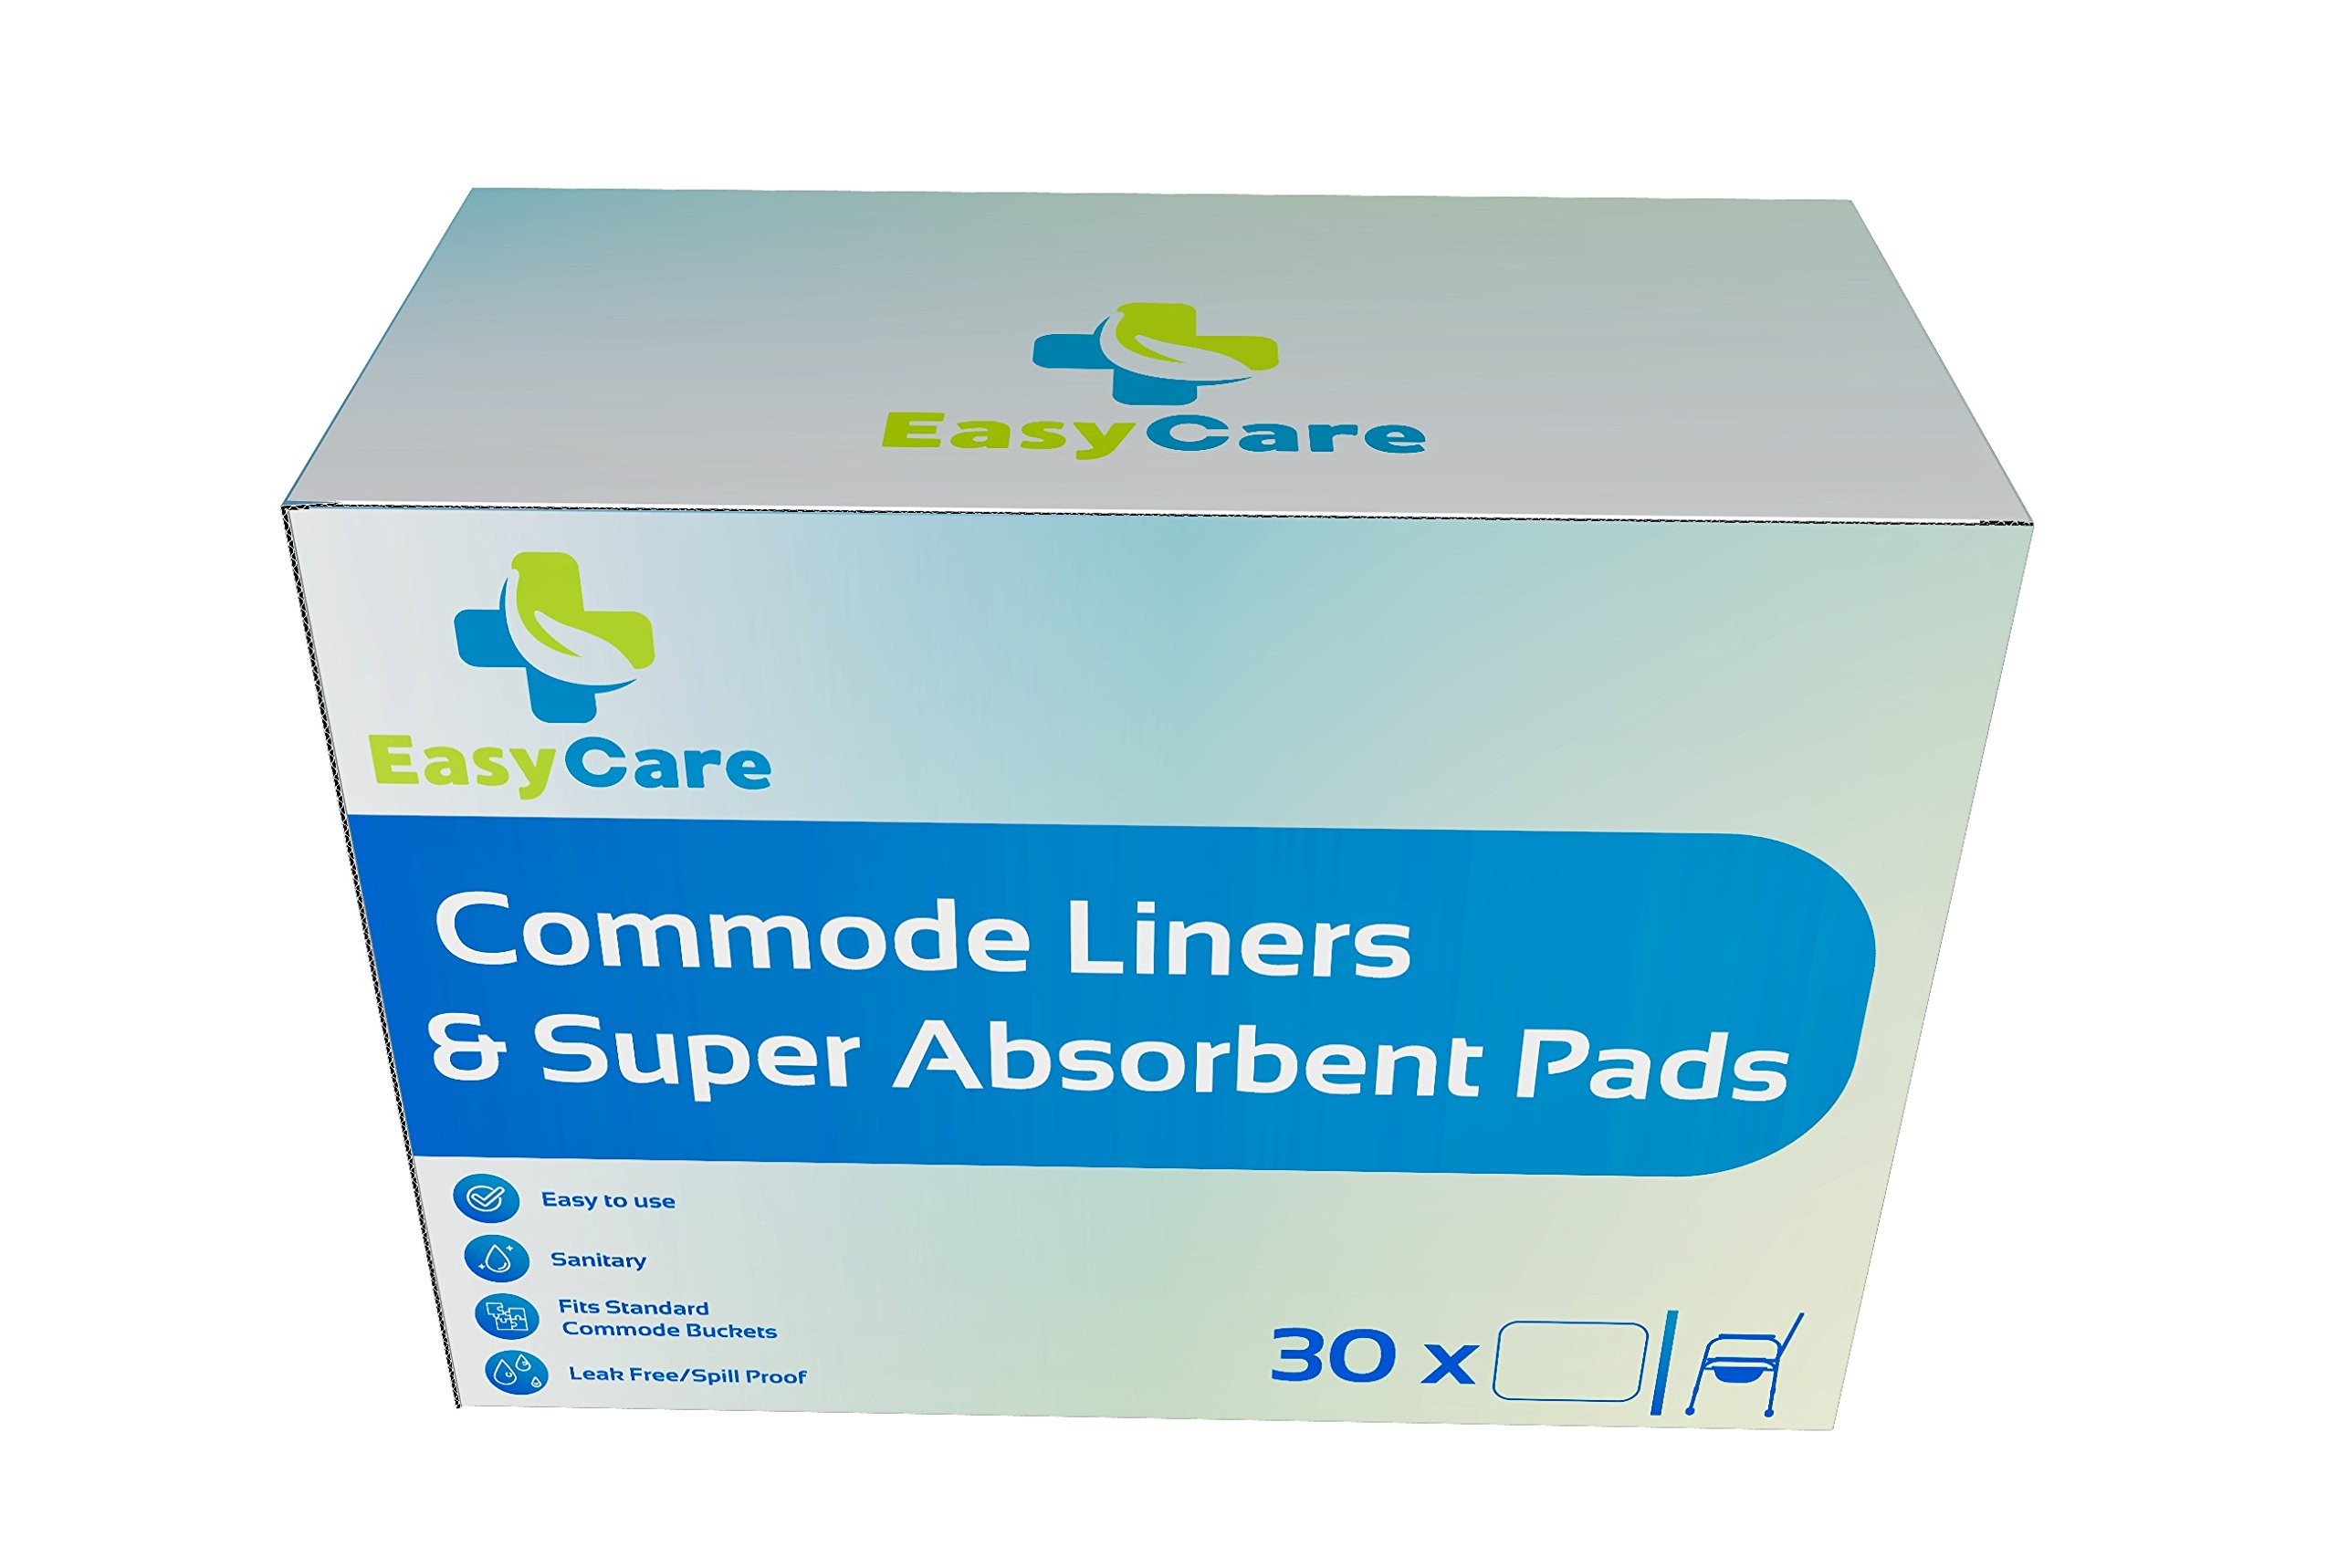 Easycare Commode Liners | 30pk | ($.86/Count) | Commode Liner | Commode Liners with Absorbent Pads | Bedside Commodes for Adults | Portable Toilet